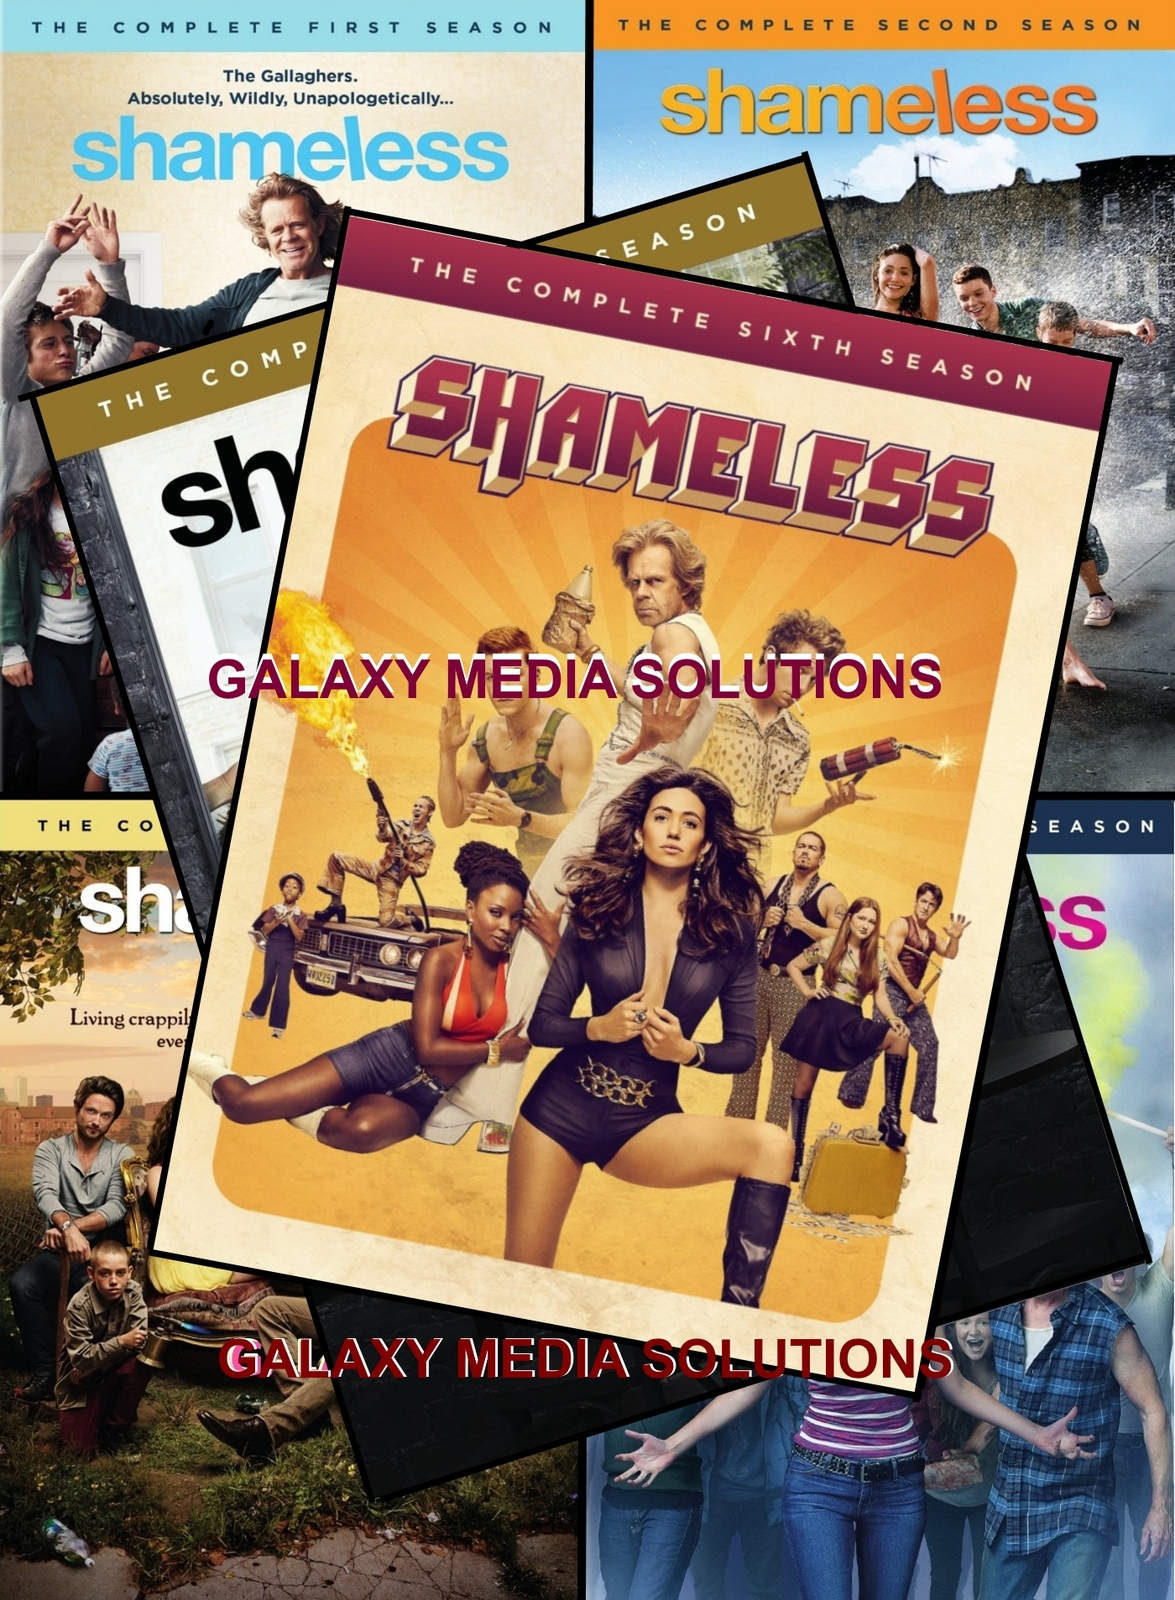 Shameless Season One-Six 1-6 DVD Bundle (15 Disc 2016) 1 2 3 4 5 6 Comedy Ghalla